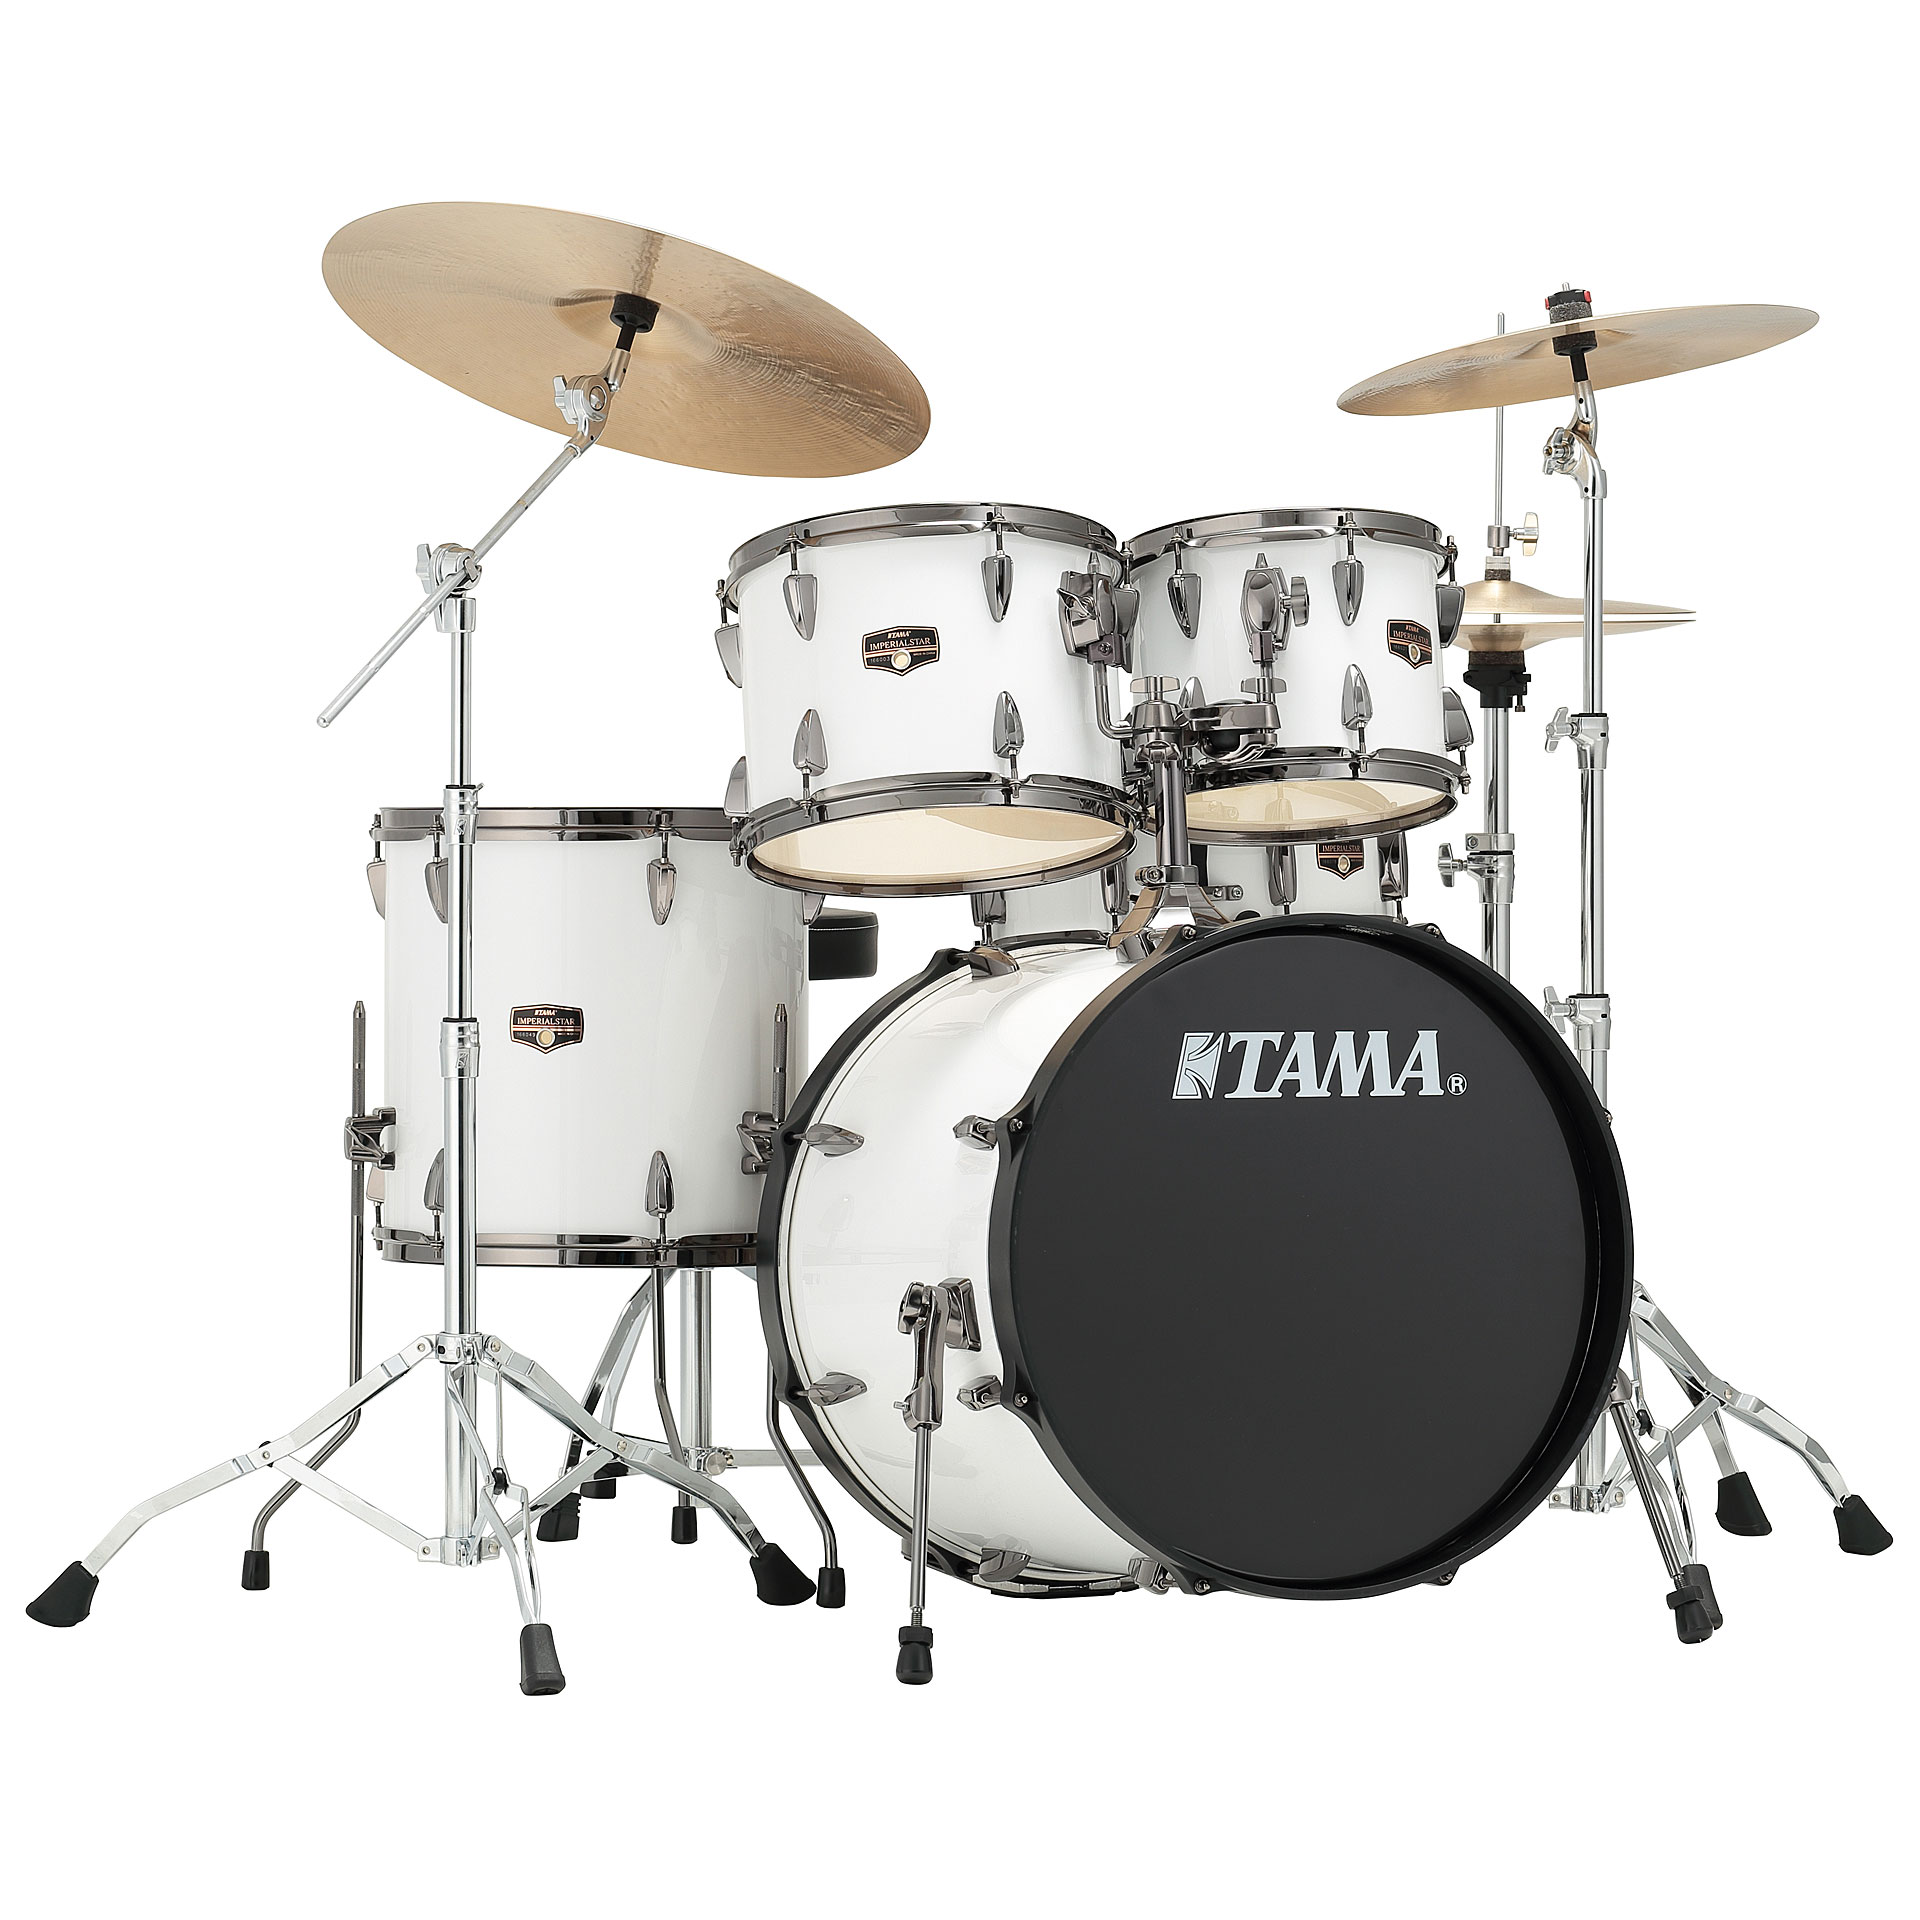 Tama imperialstar 20 sugar white drum kit for Classic house drums